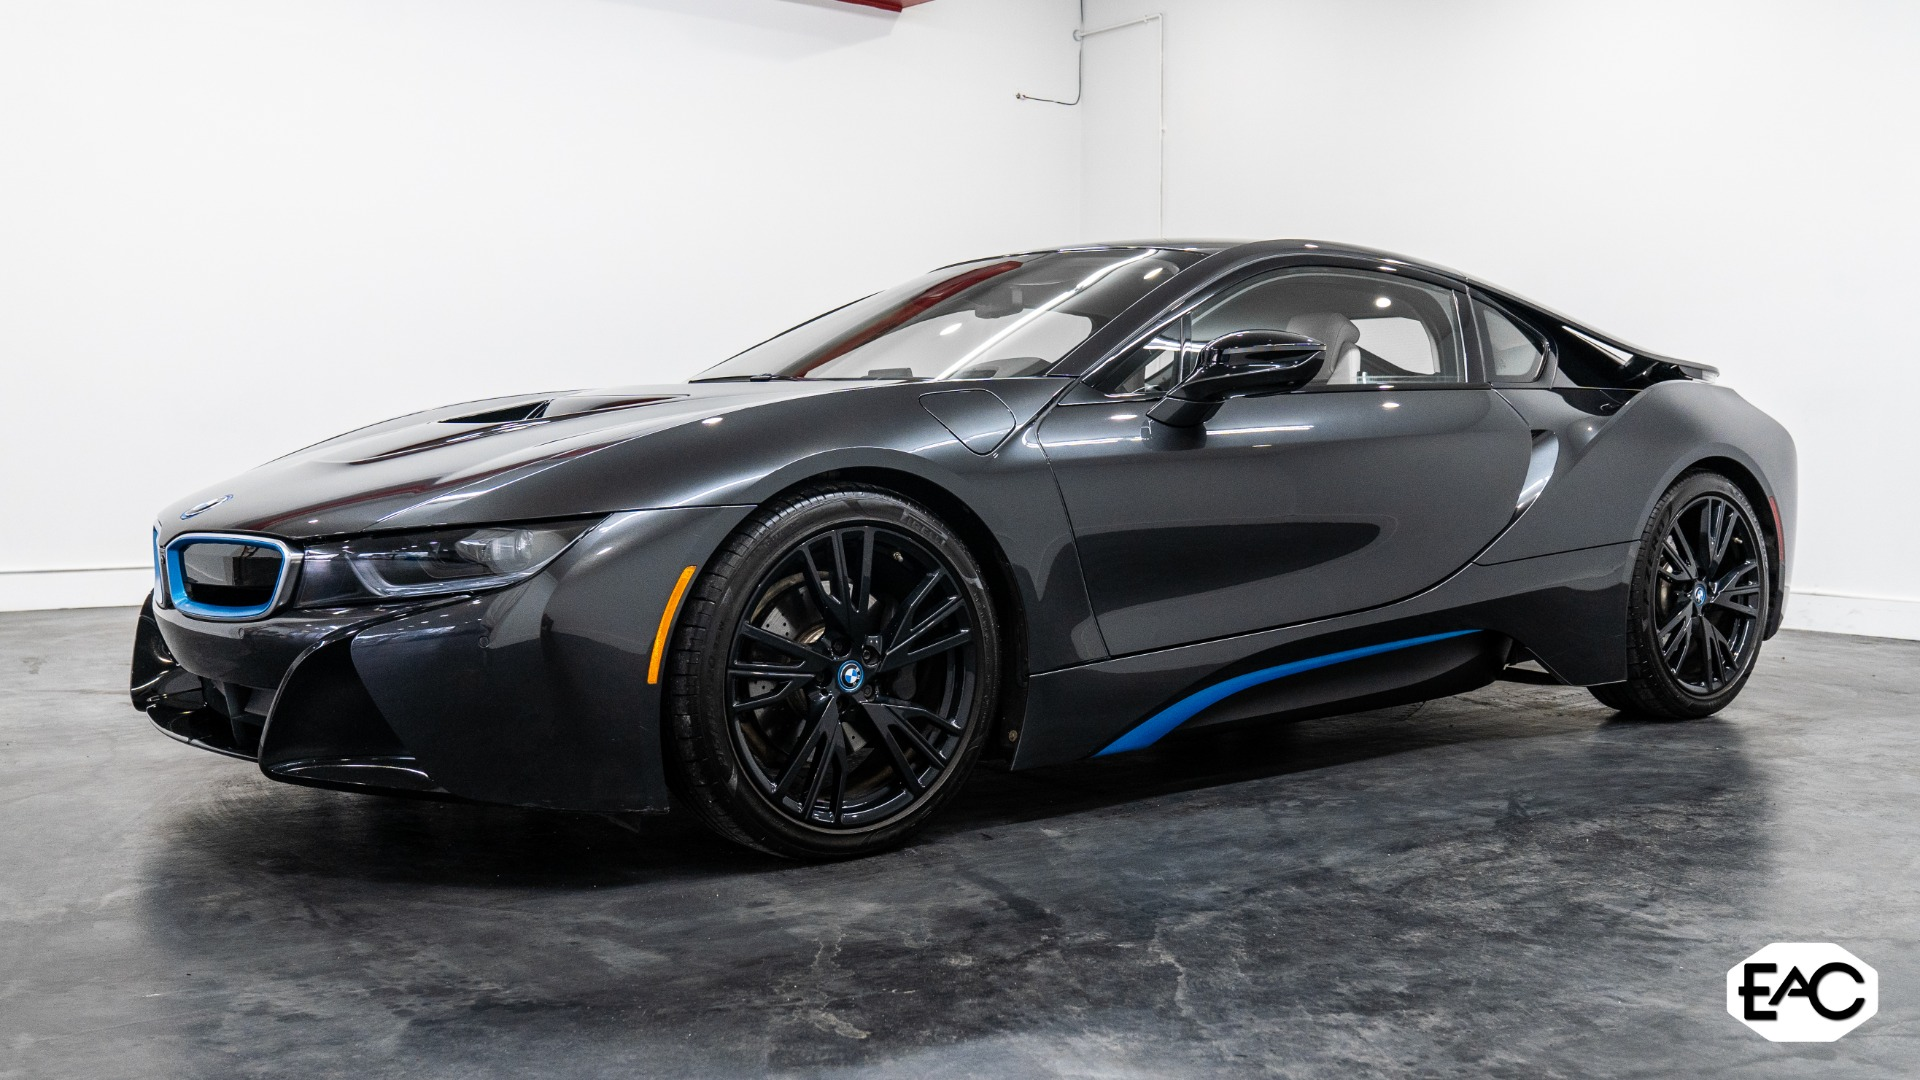 Used 2015 BMW i8 for sale Sold at Empire Auto Collection in Warren MI 48091 1